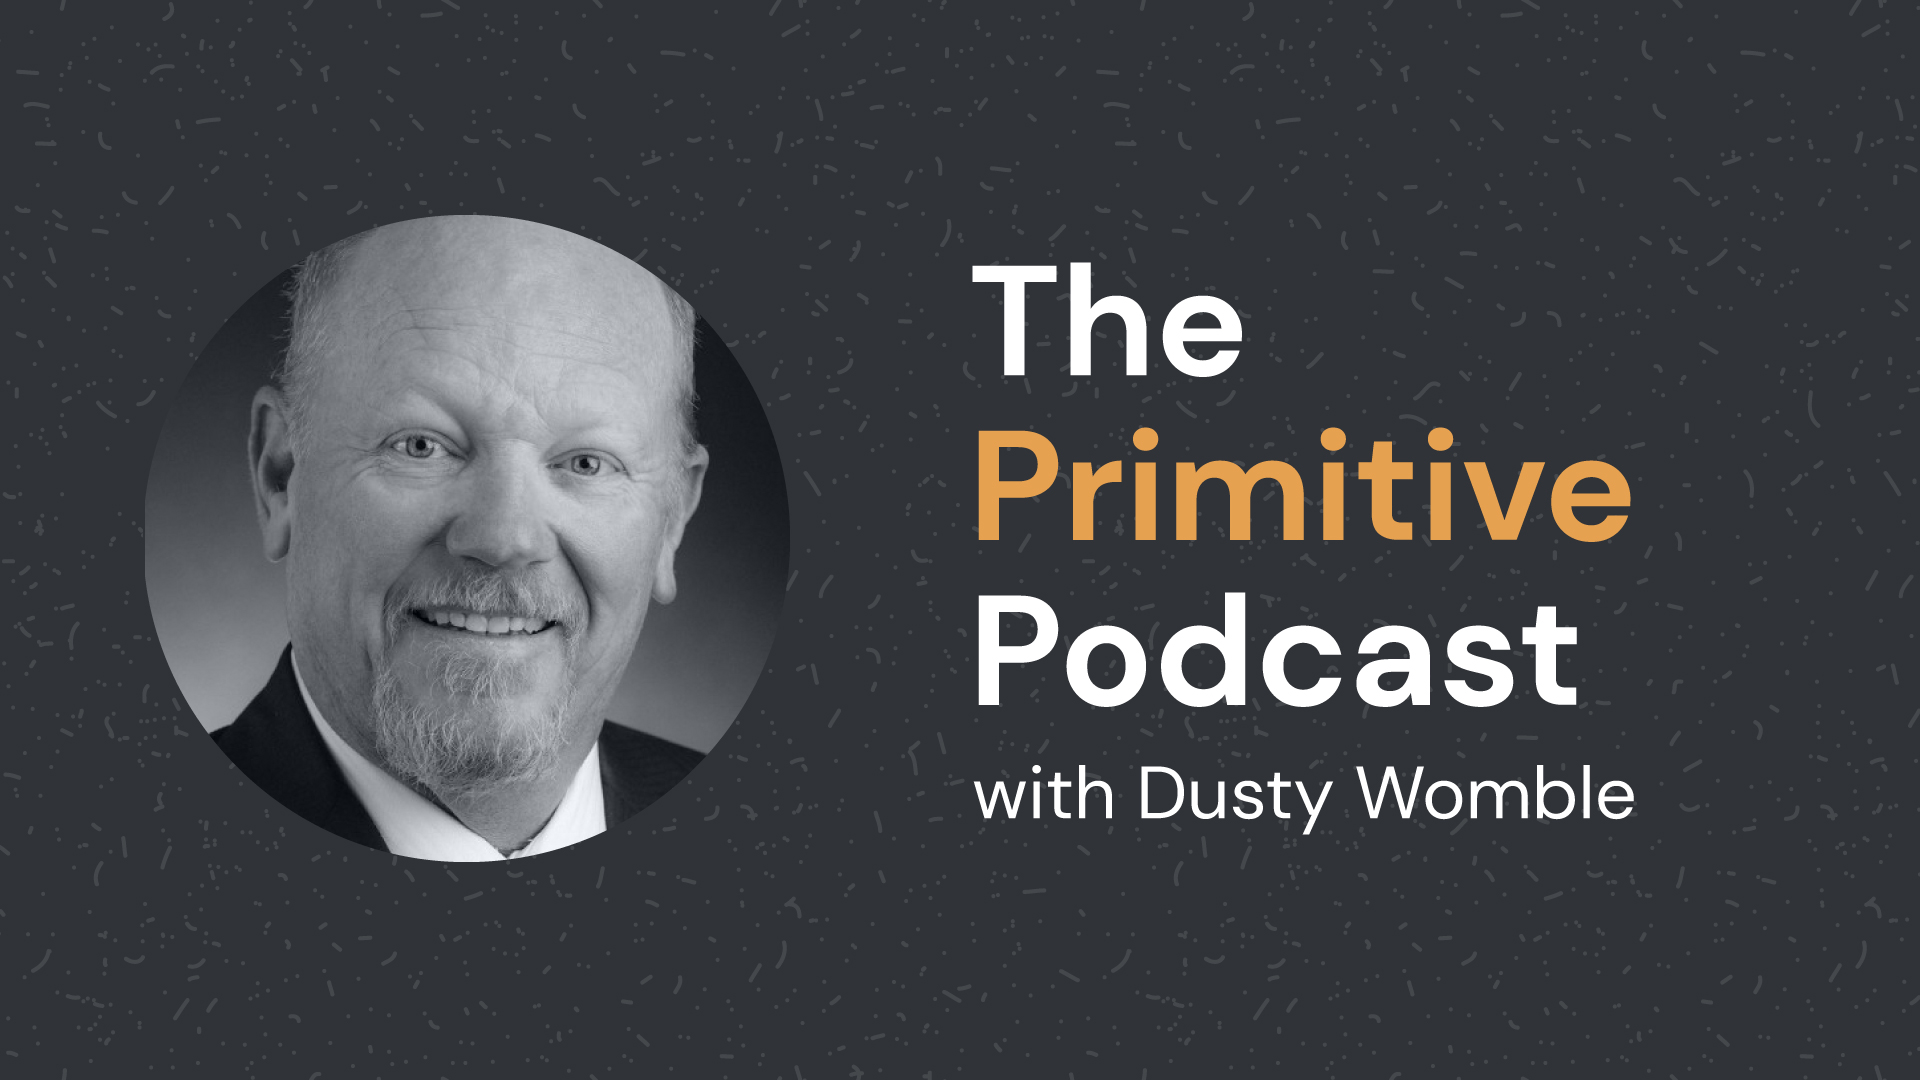 The Primitive Podcast: Dusty Womble